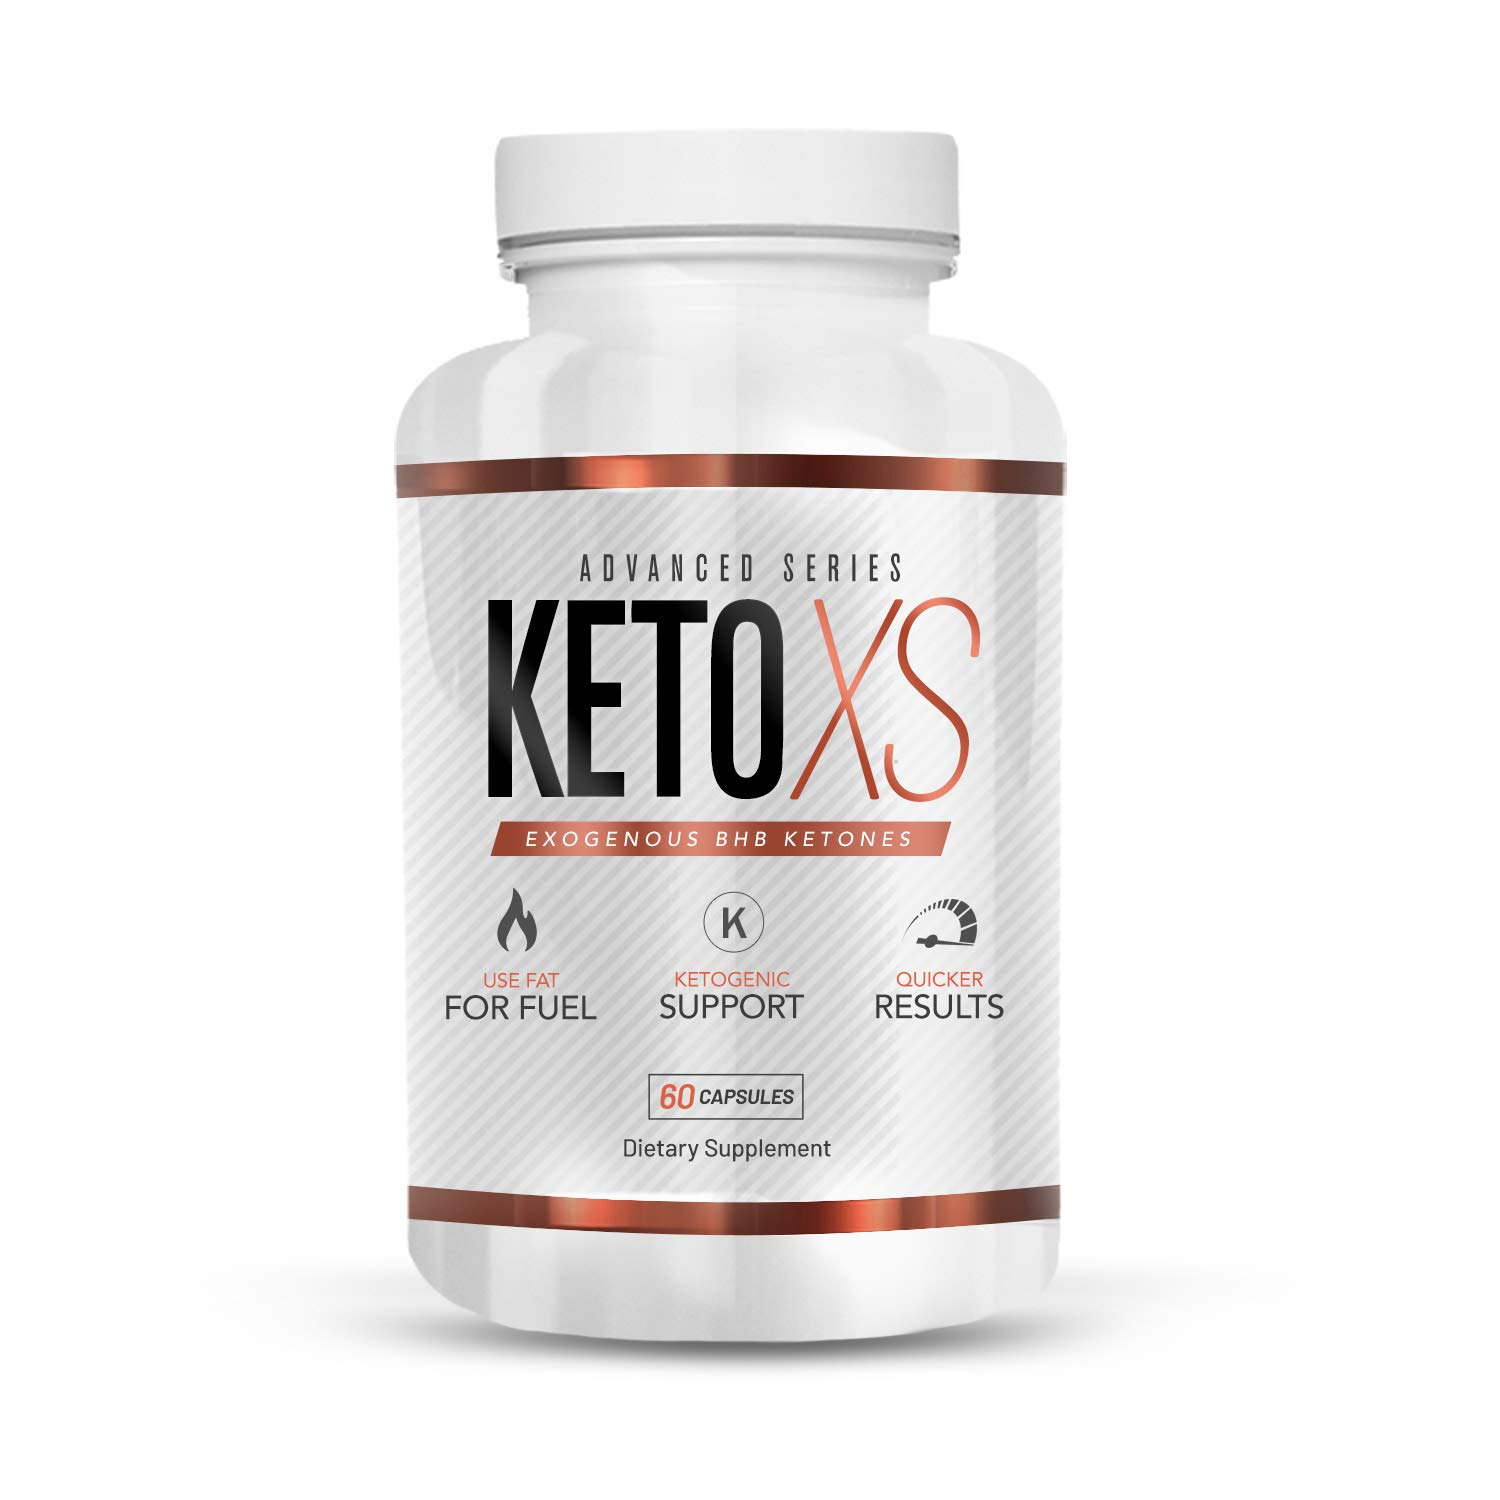 KetoXS Exogenous BHB Ketones Supplement - Weight Loss and Keto Diet Support by Keto XS